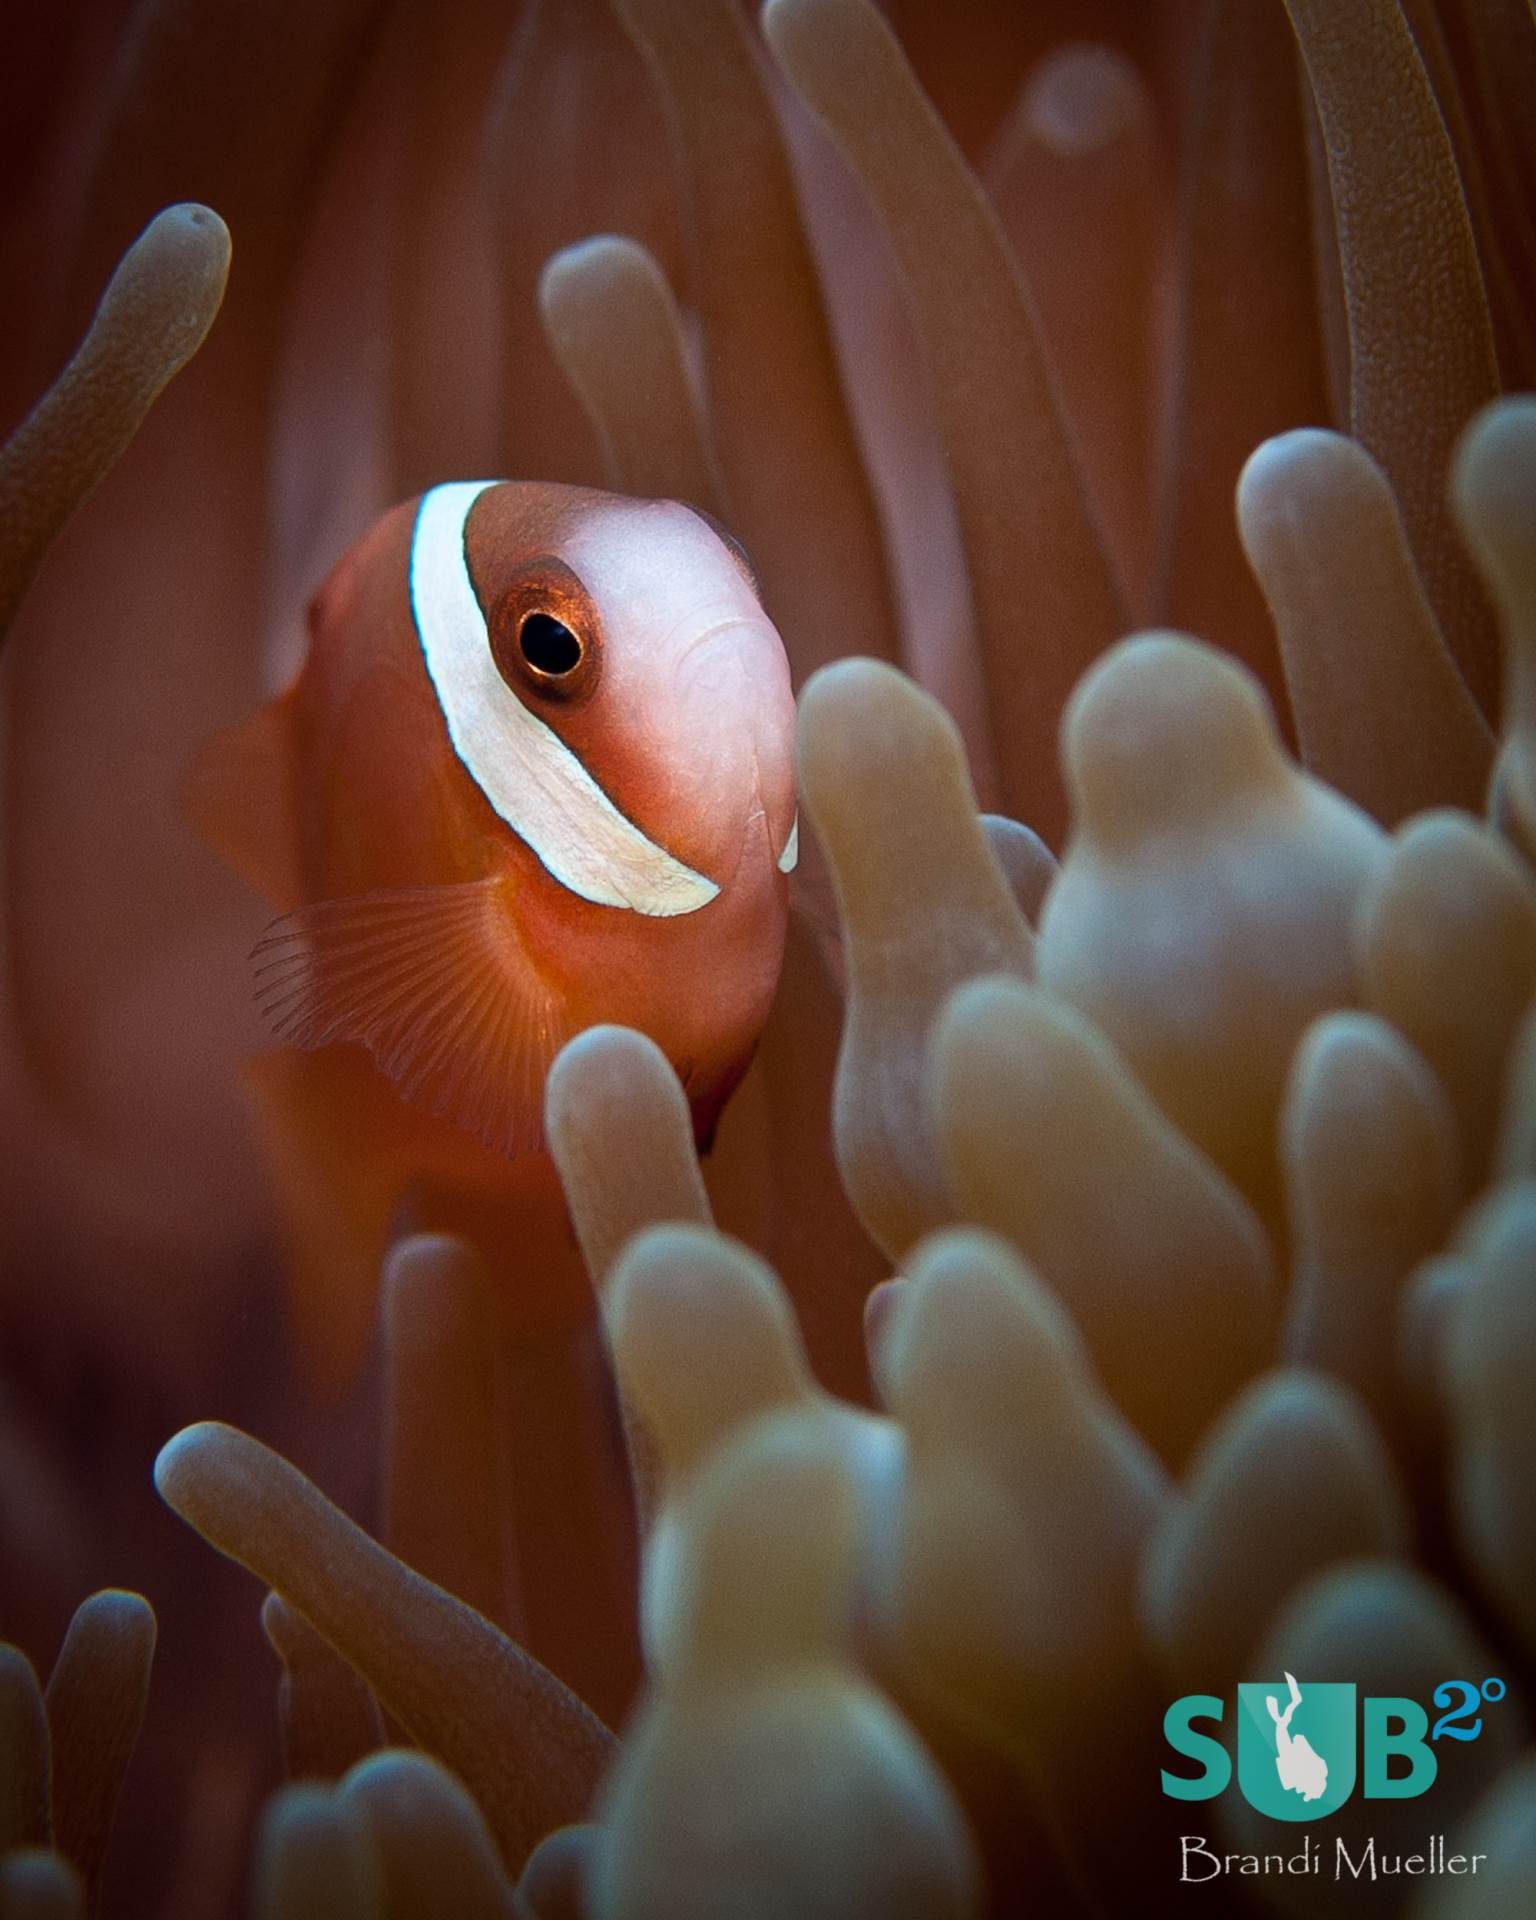 Guam's Gab Gab I dive site has an area with so many anemones and anemonefish that they appear to carpet the coral.